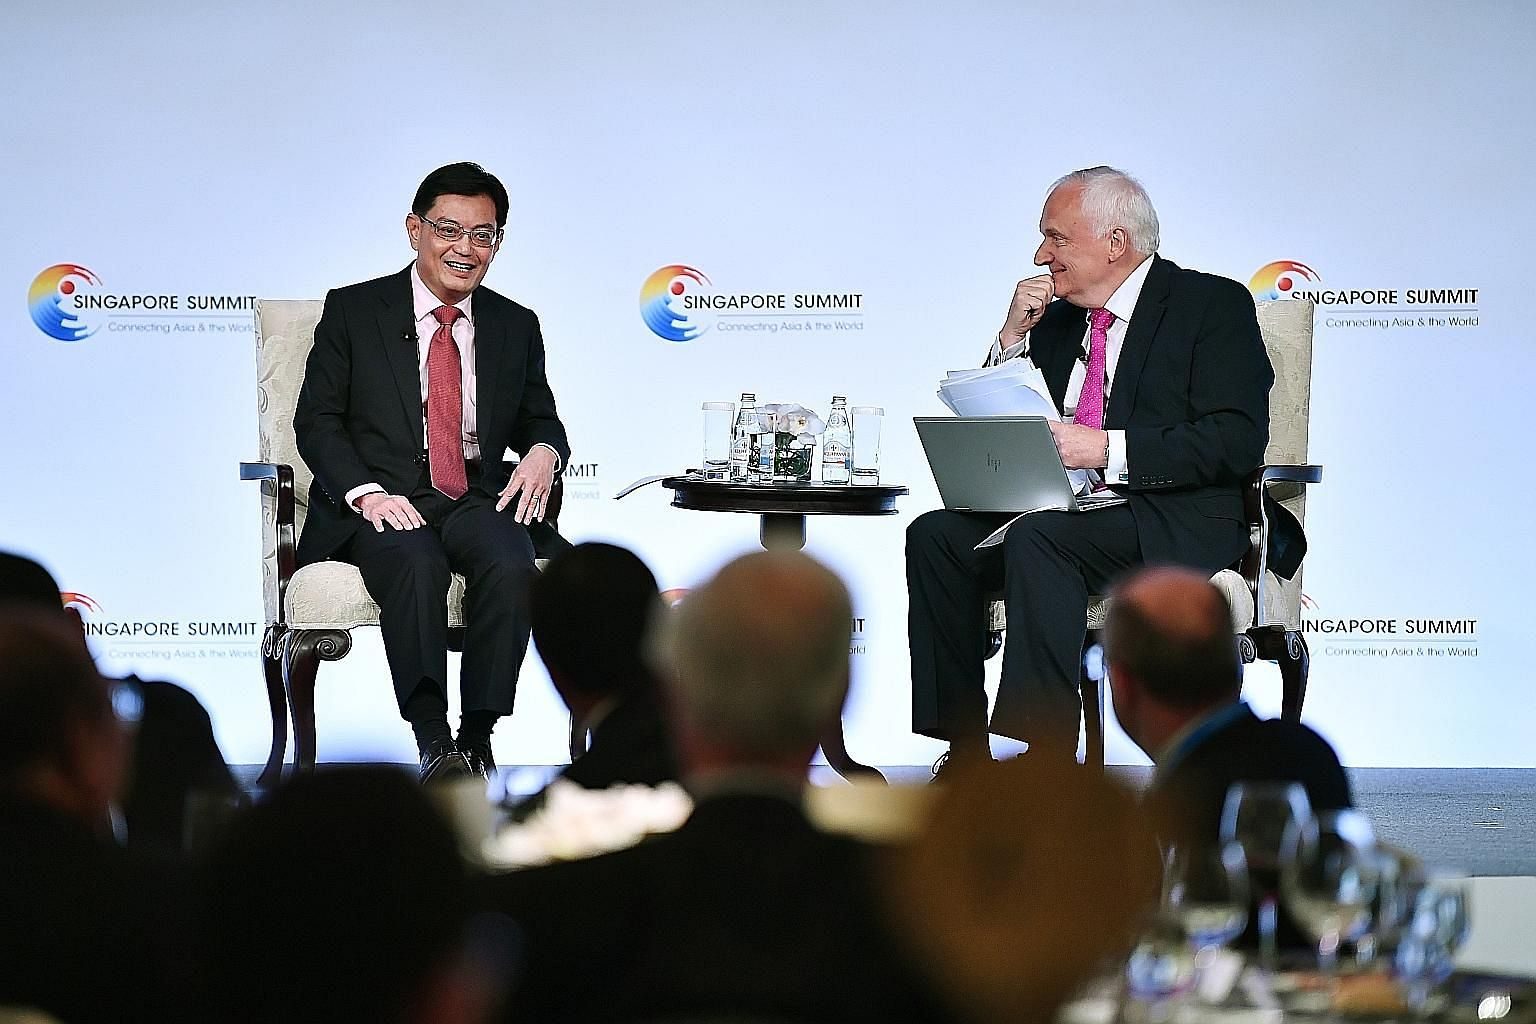 Deputy Prime Minister Heng Swee Keat at a dialogue with moderator Nik Gowing at the Singapore Summit at Shangri-La Hotel yesterday. ST PHOTO: LIM YAOHUI